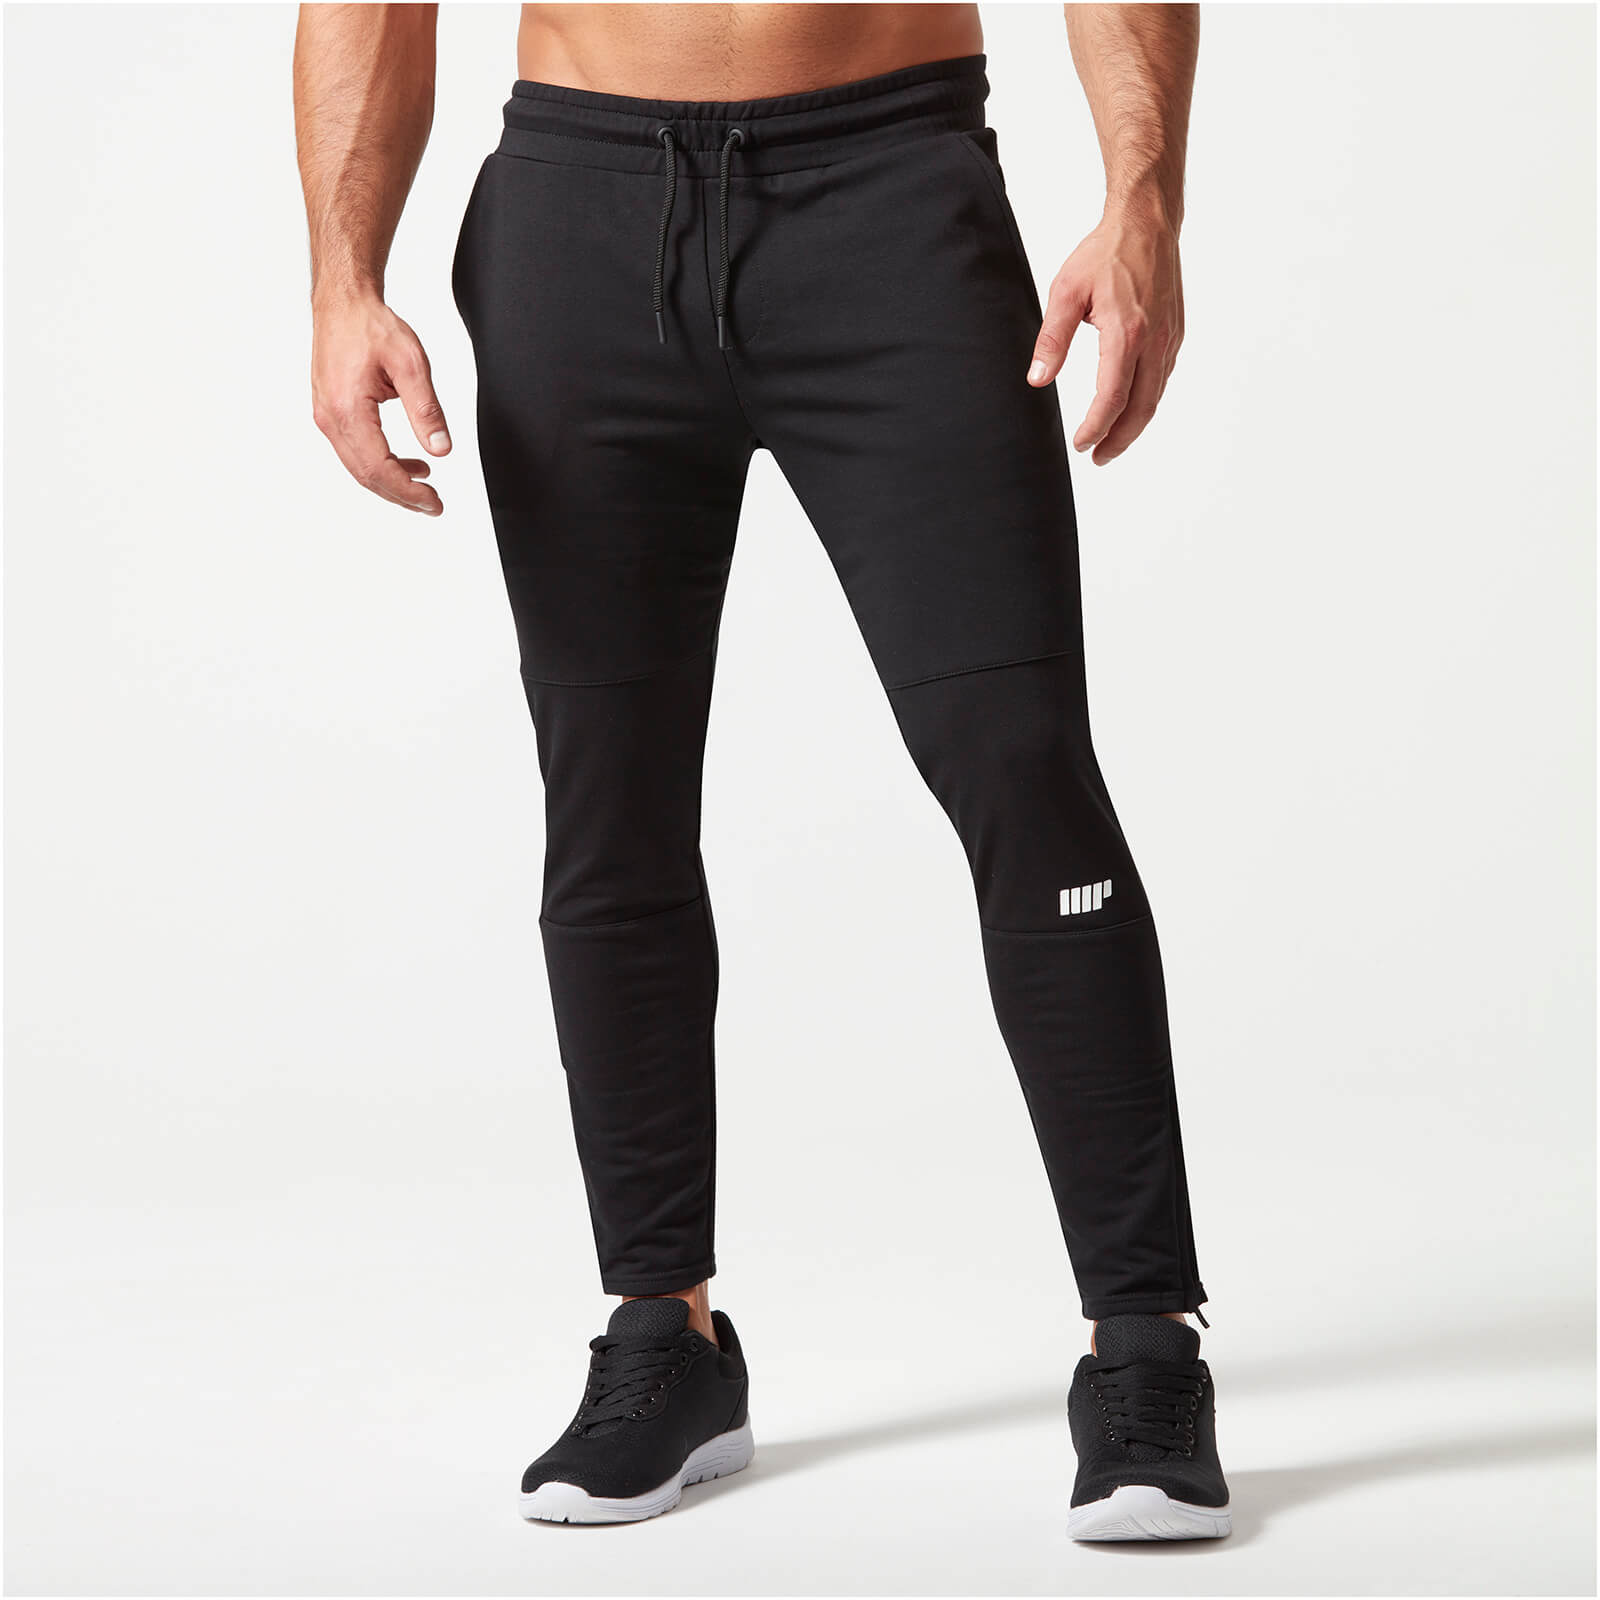 MYPROTEIN Clothing Outlet Sale – <span> As low as $4 </span>